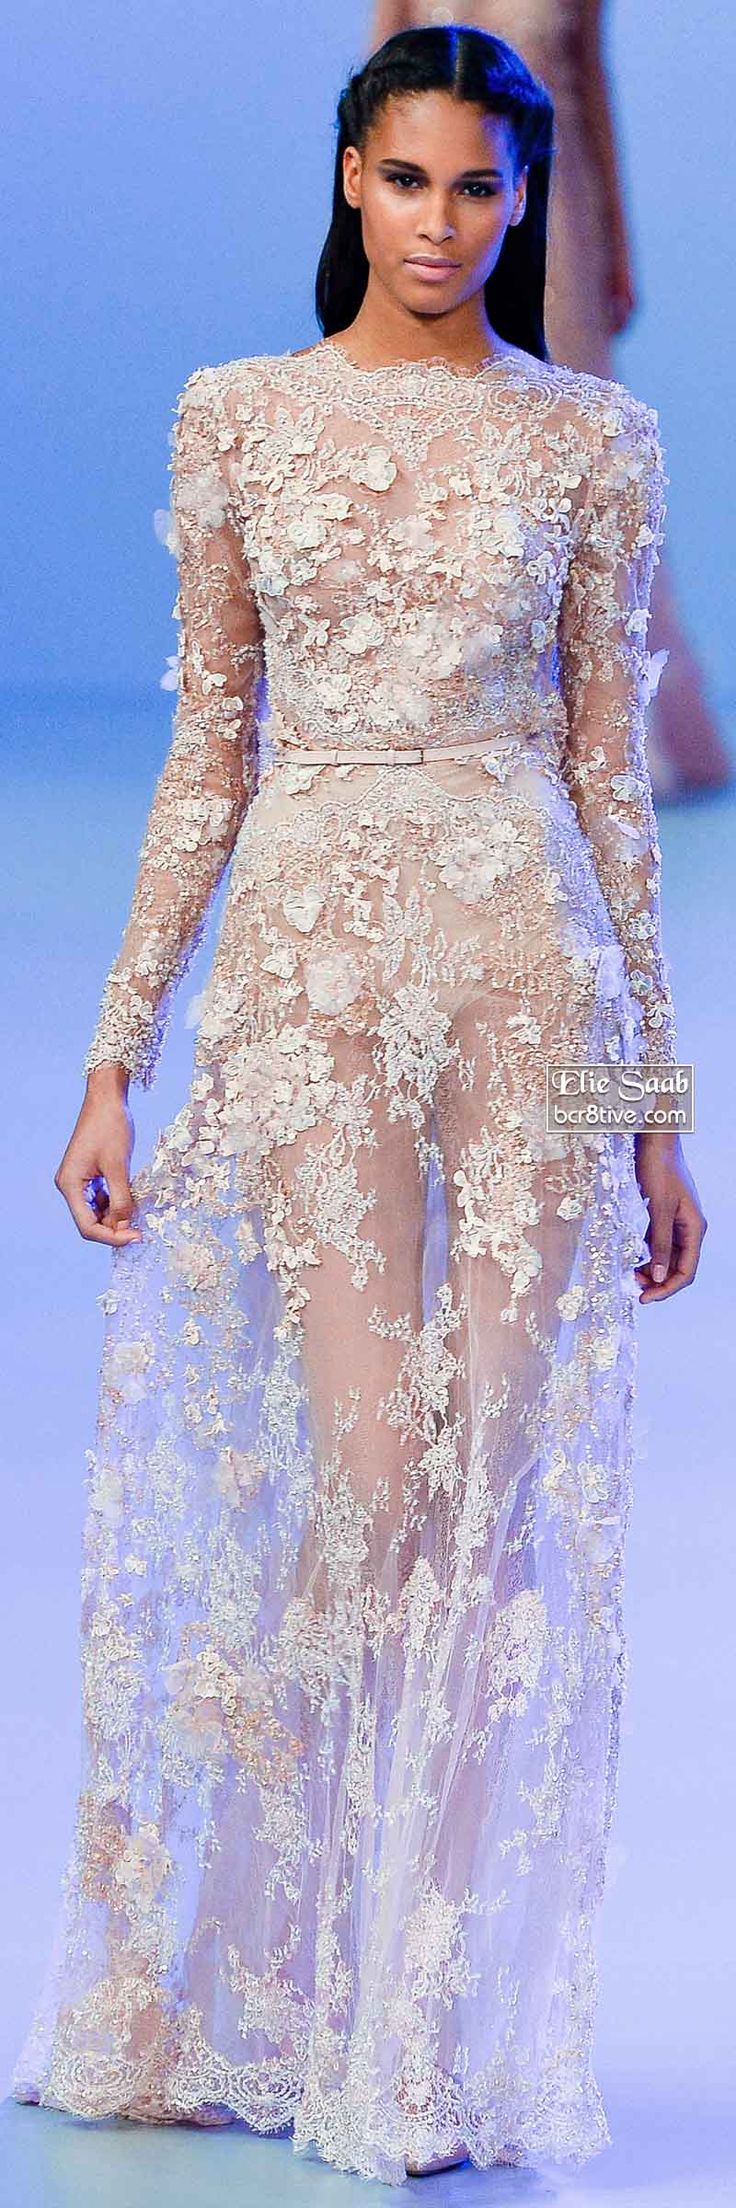 Angelical. Elie Saab Spring 2014 Couture Collection